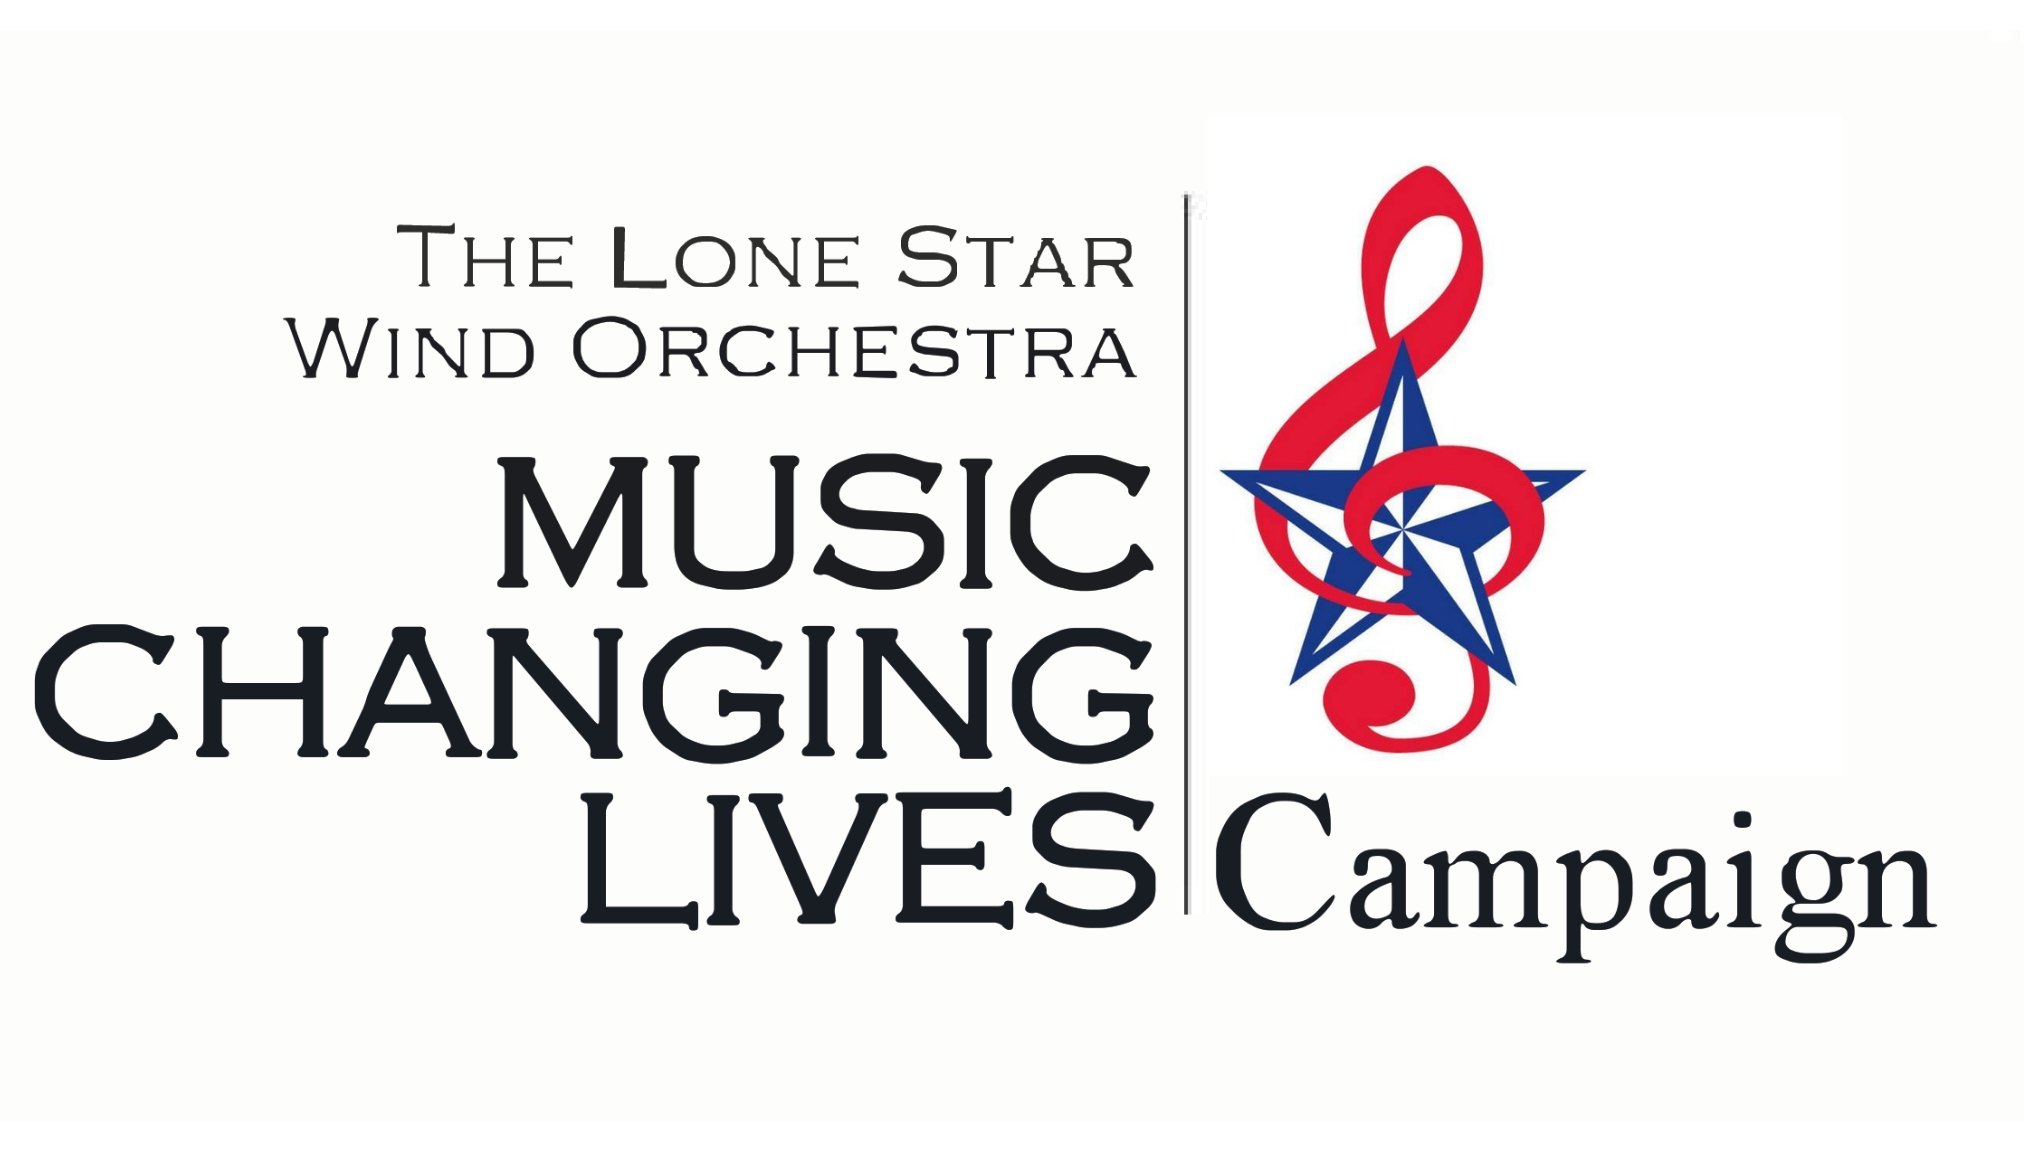 lone star wind orchestra, music changing lives, fundraising campaign